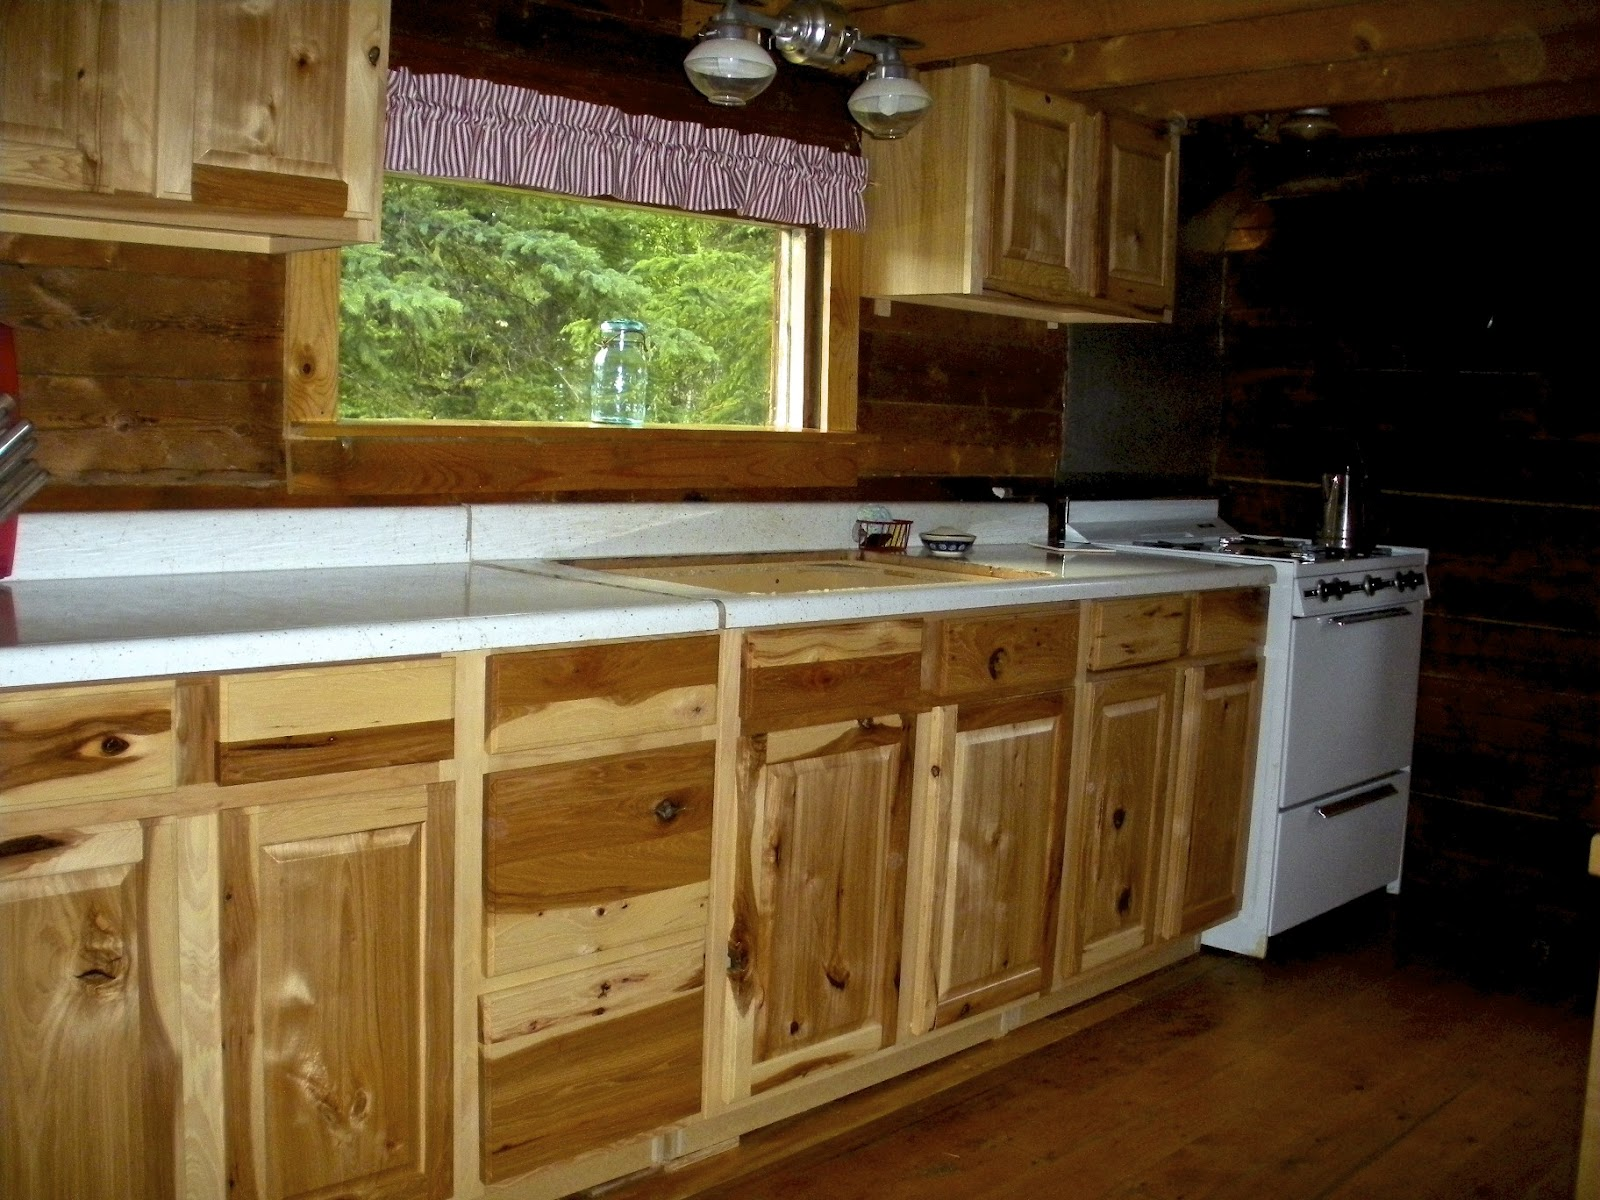 lowes kitchen cabinets doors kitchen cabinets at lowes Kitchen Cabinet Doors Lowes